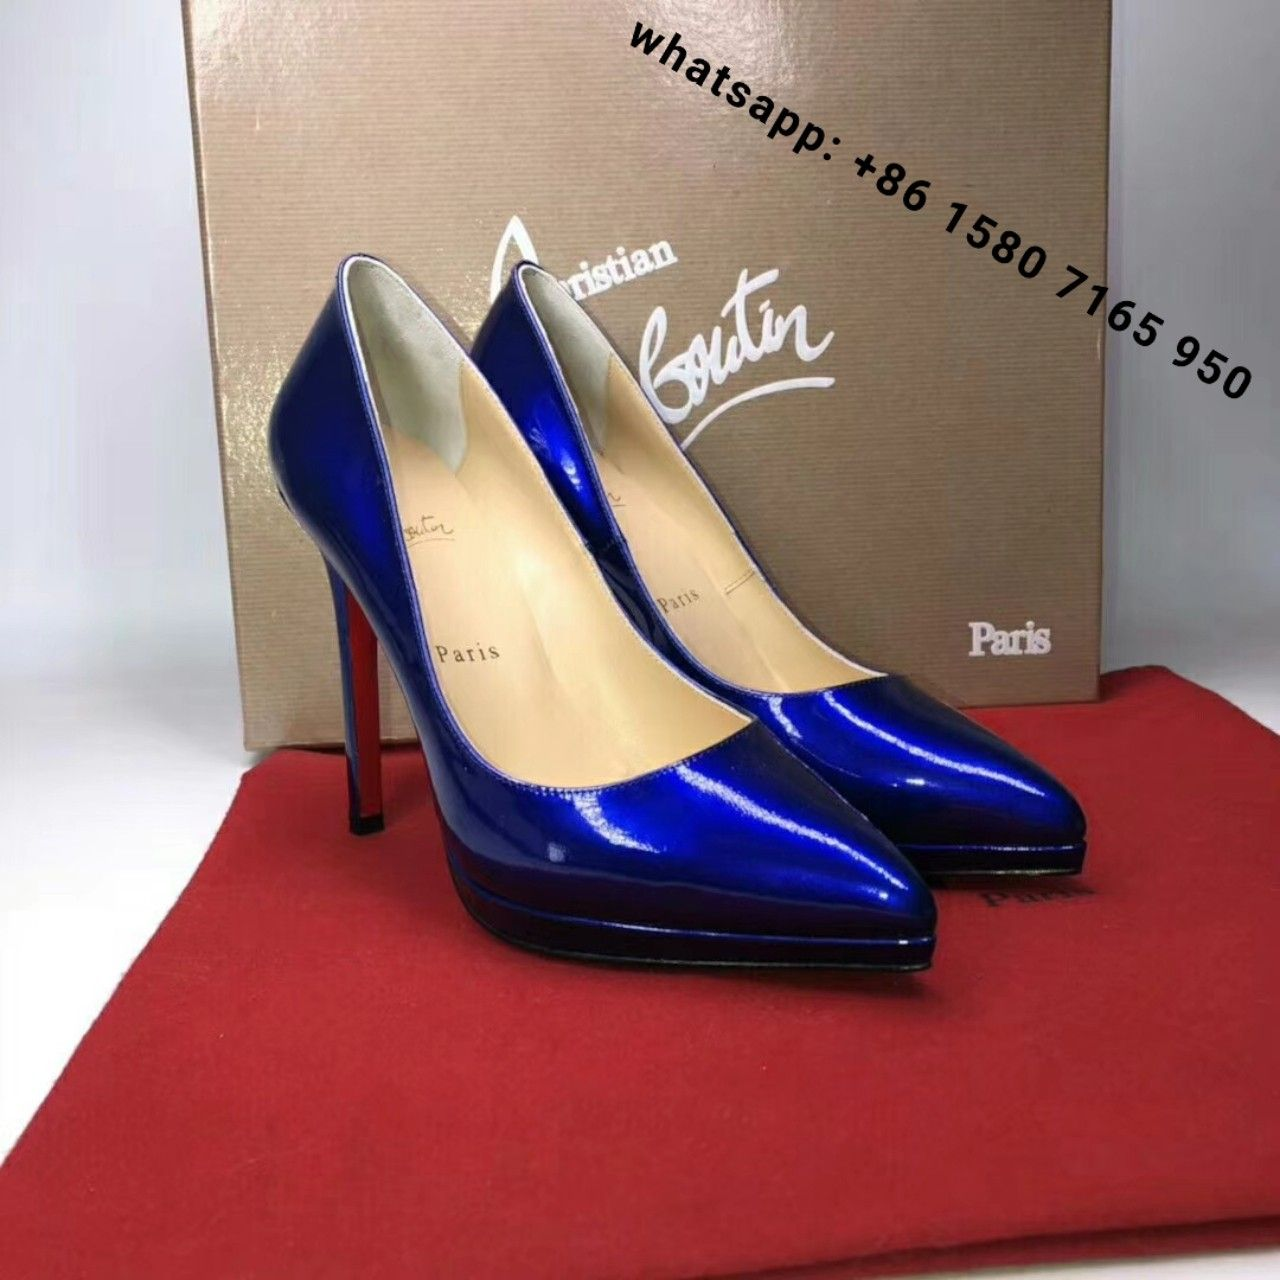 louboutin paris contact